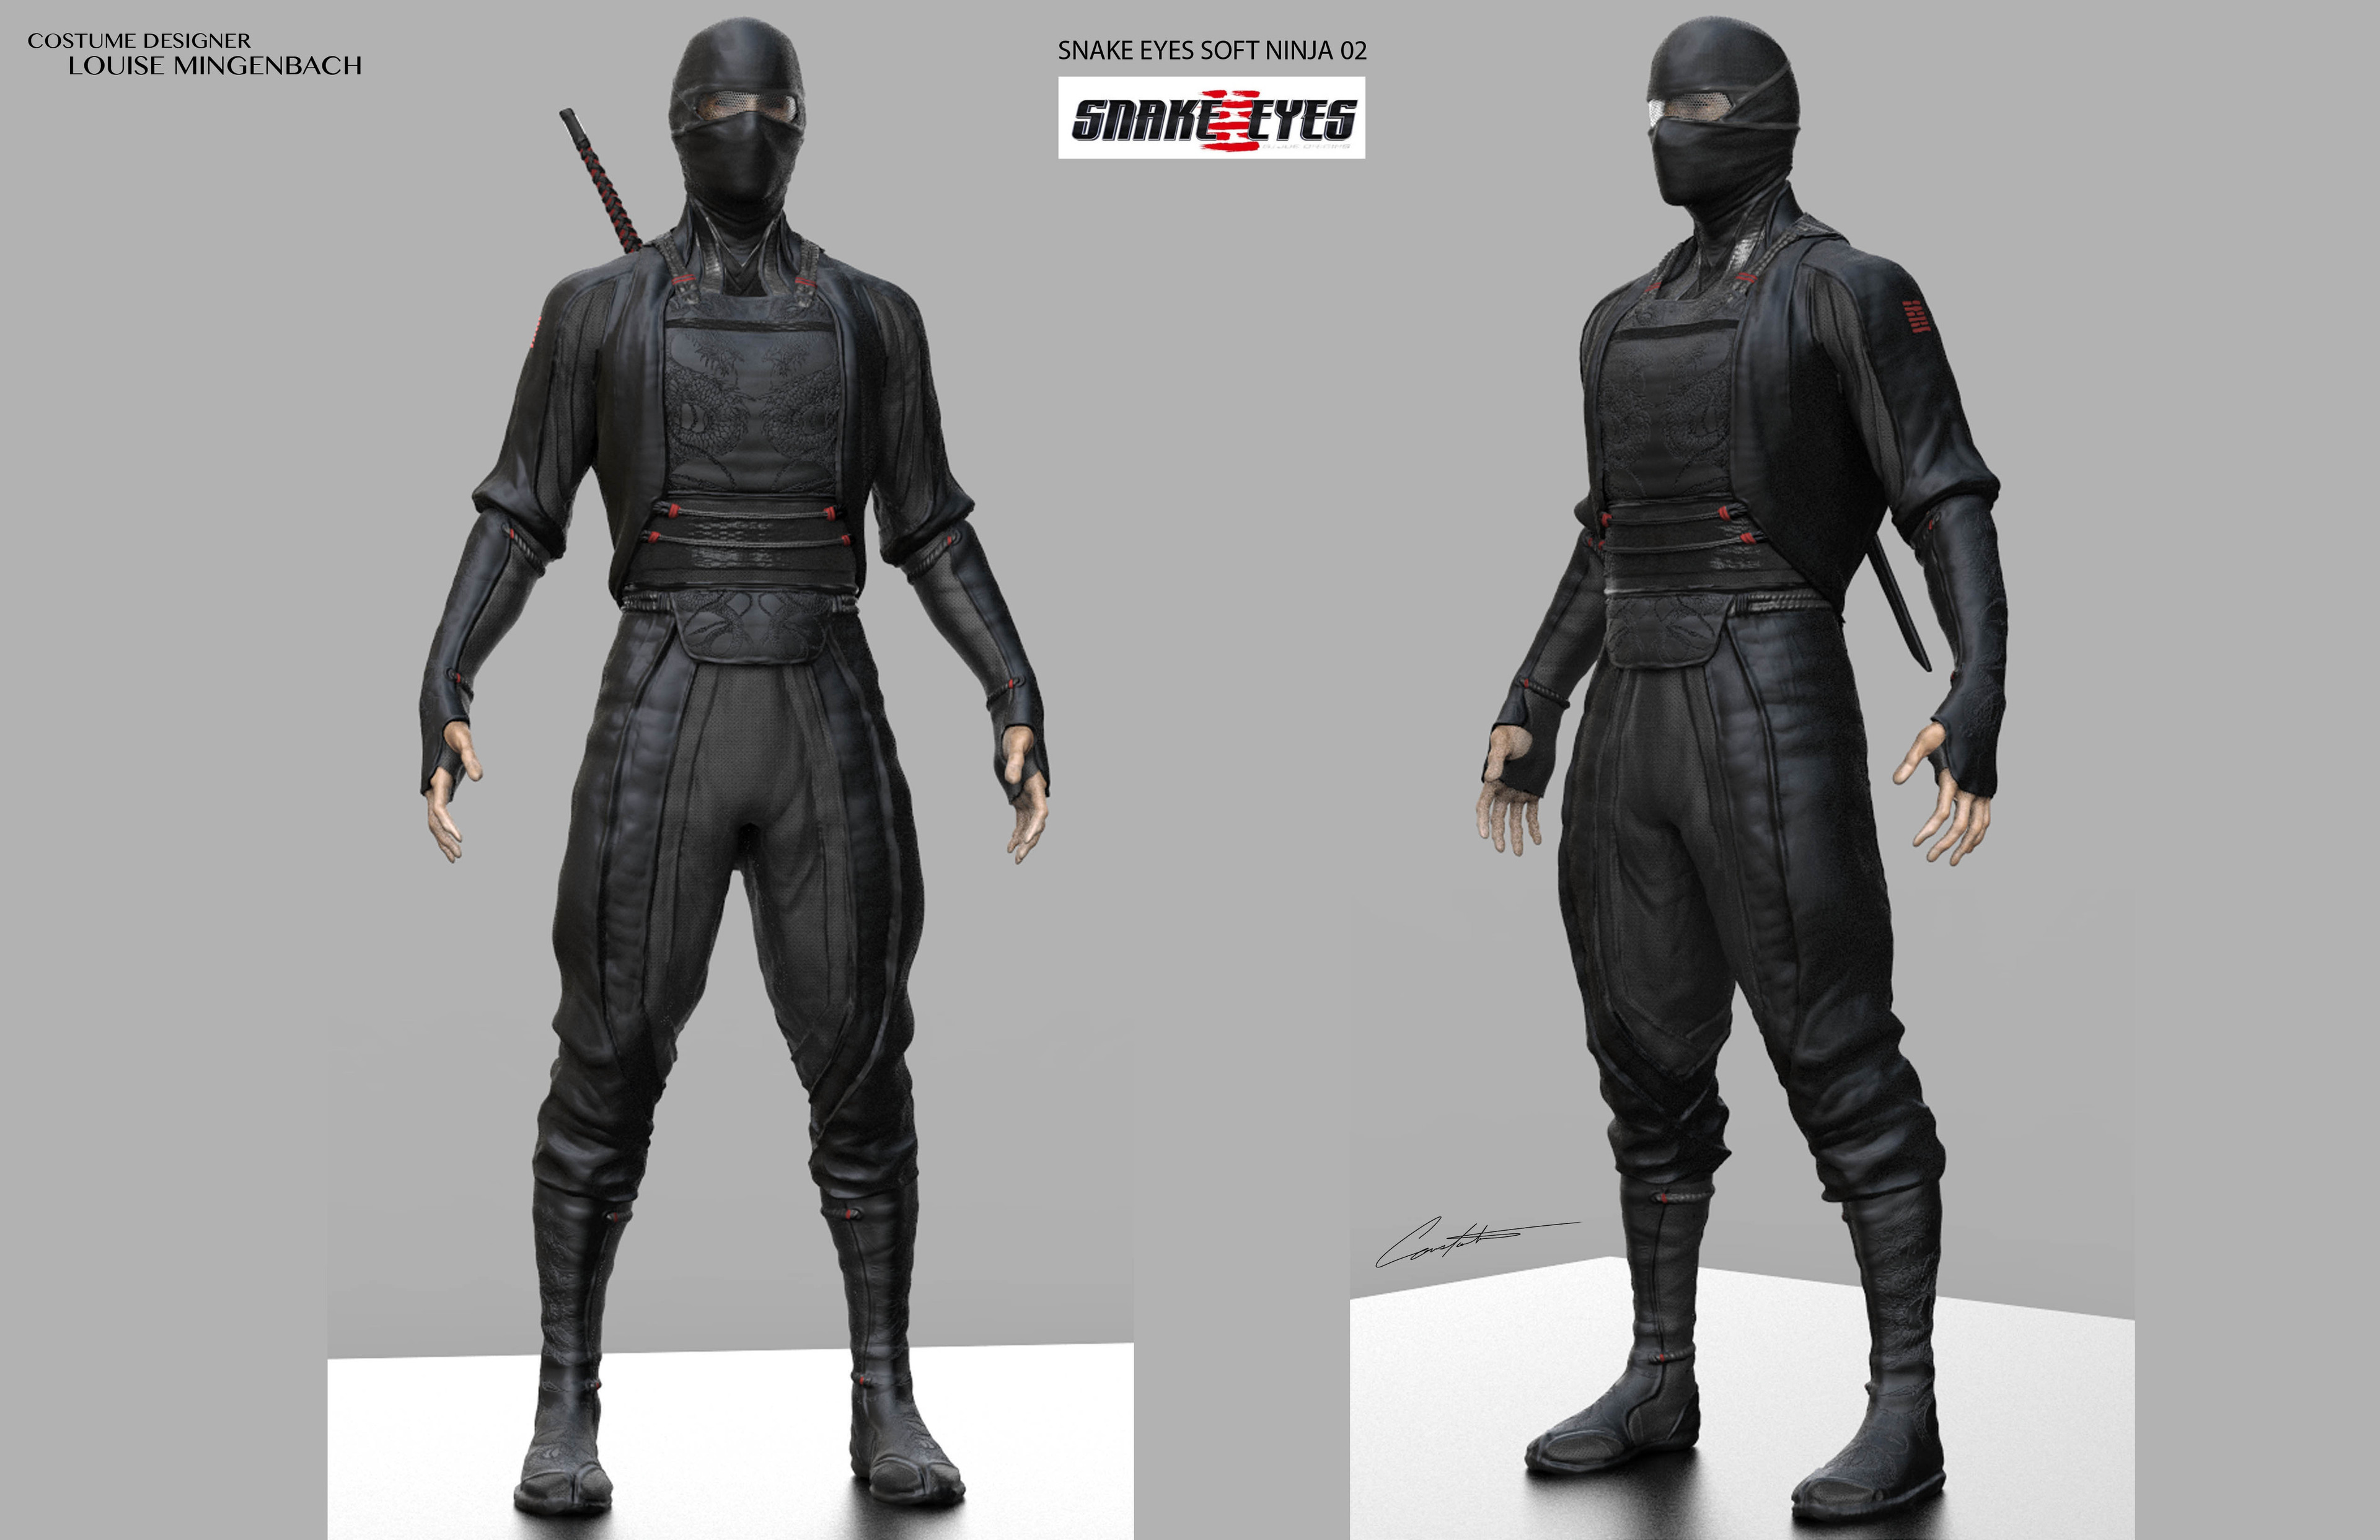 Snake Eyes early exploration concept